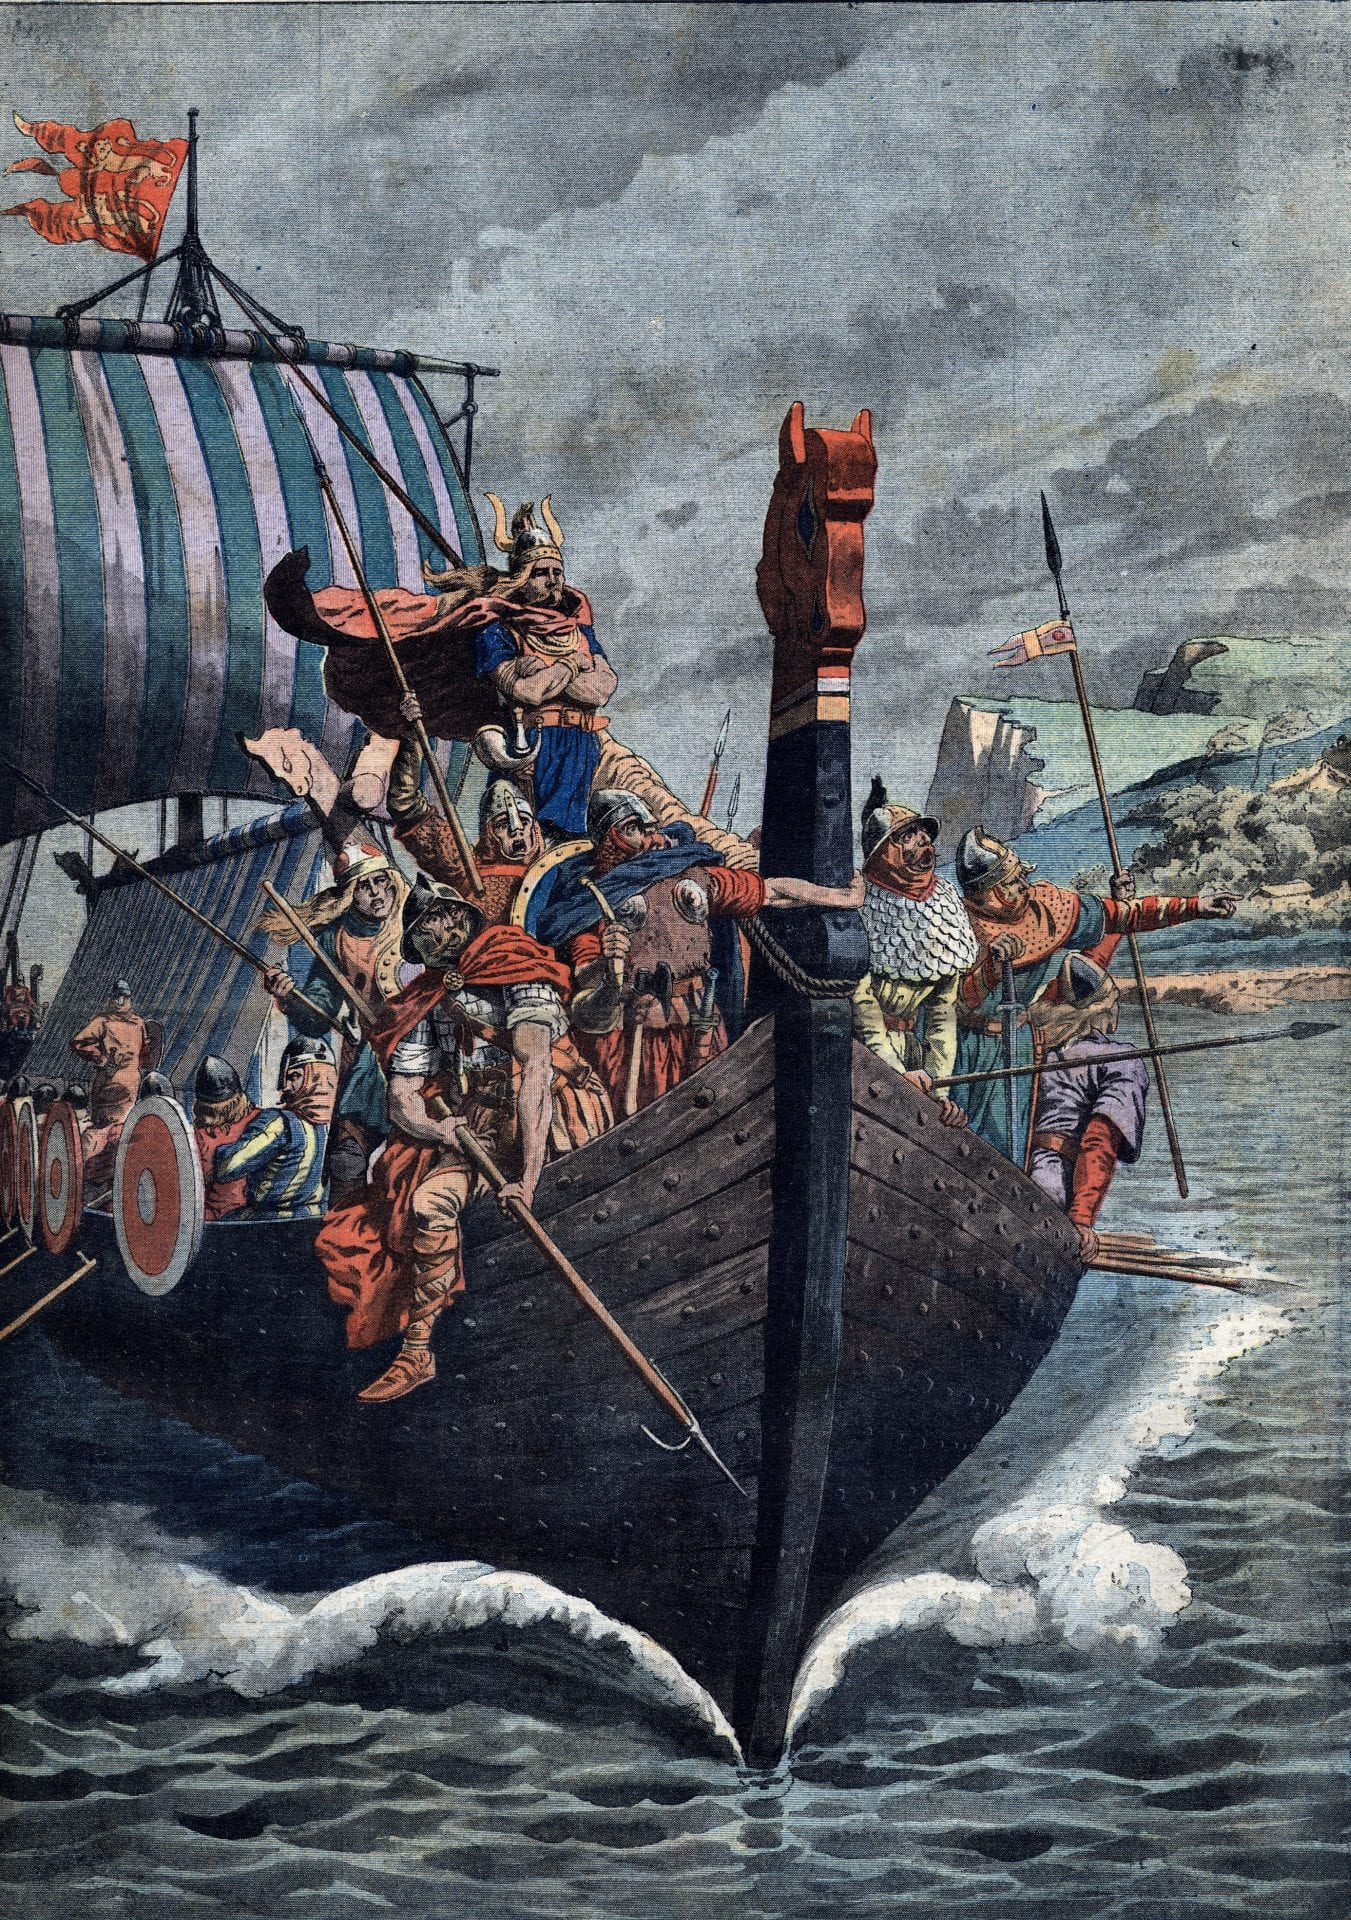 Illustration of the arrival of Vikings at Normandy in the 9th century